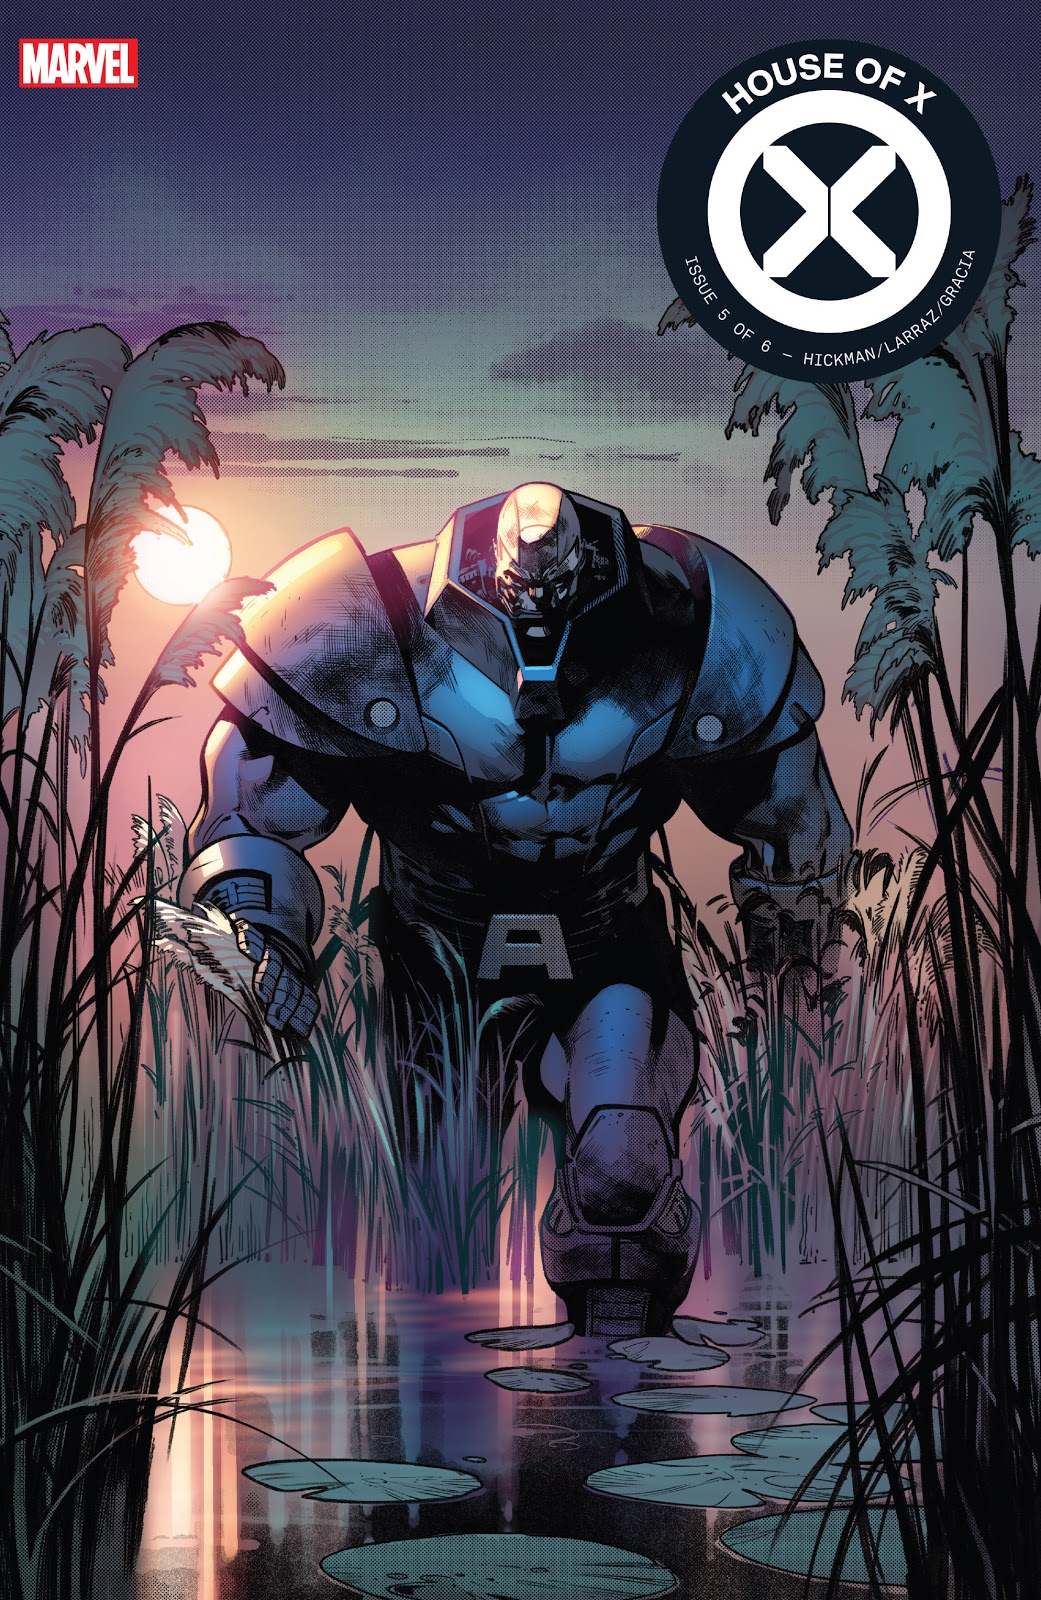 House of X Issue 5 review